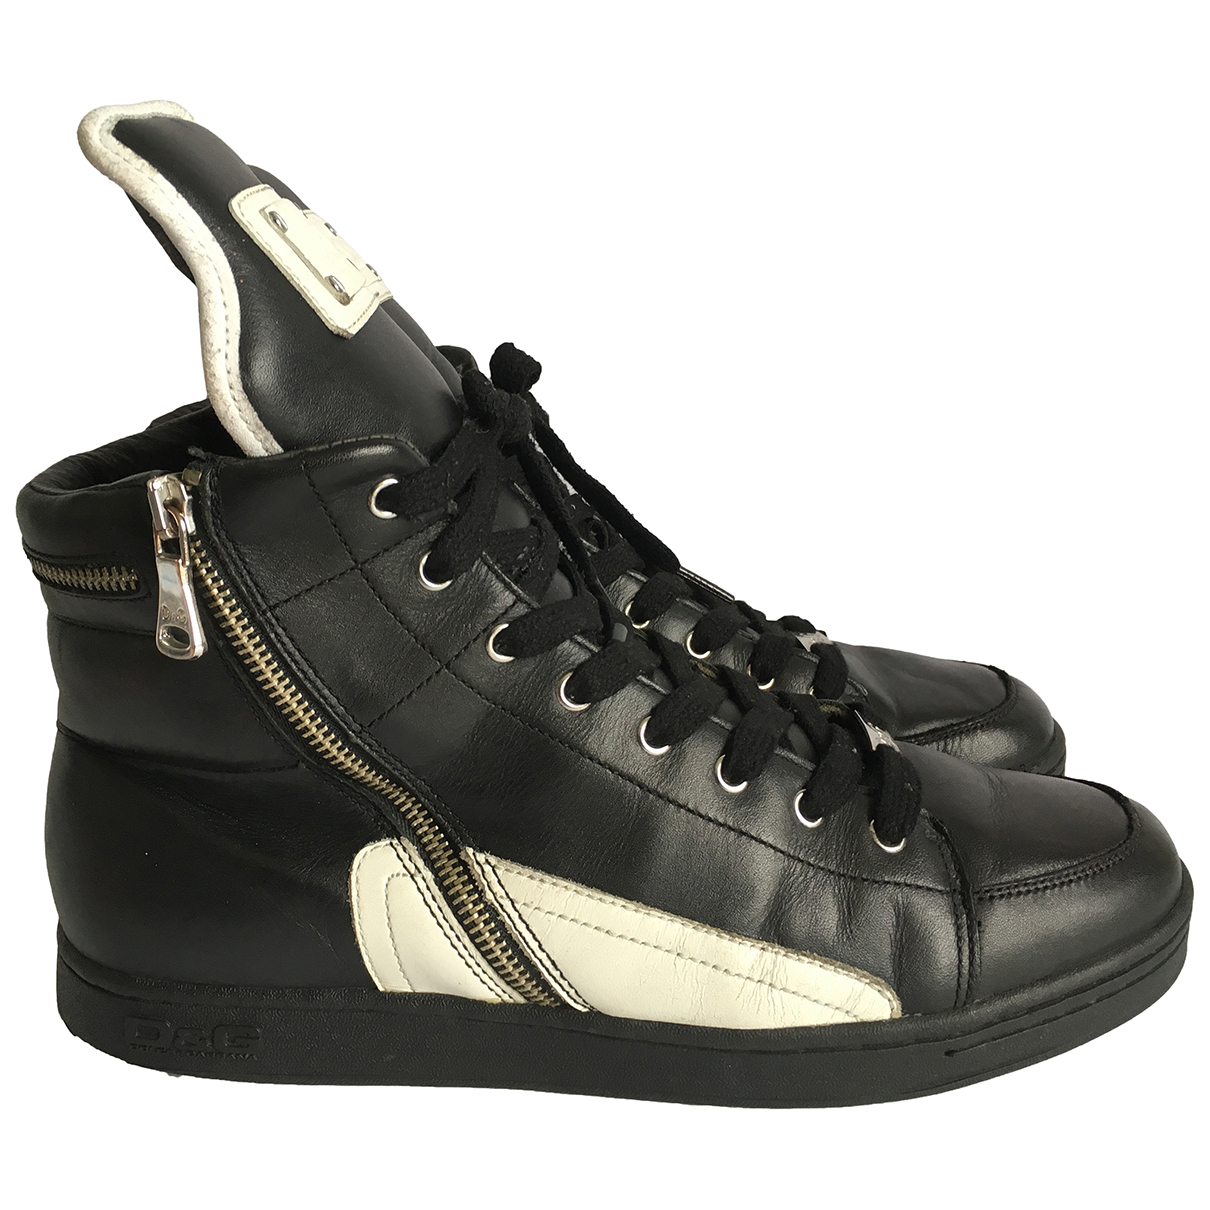 D&g \N Black Leather Trainers for Men 41.5 EU